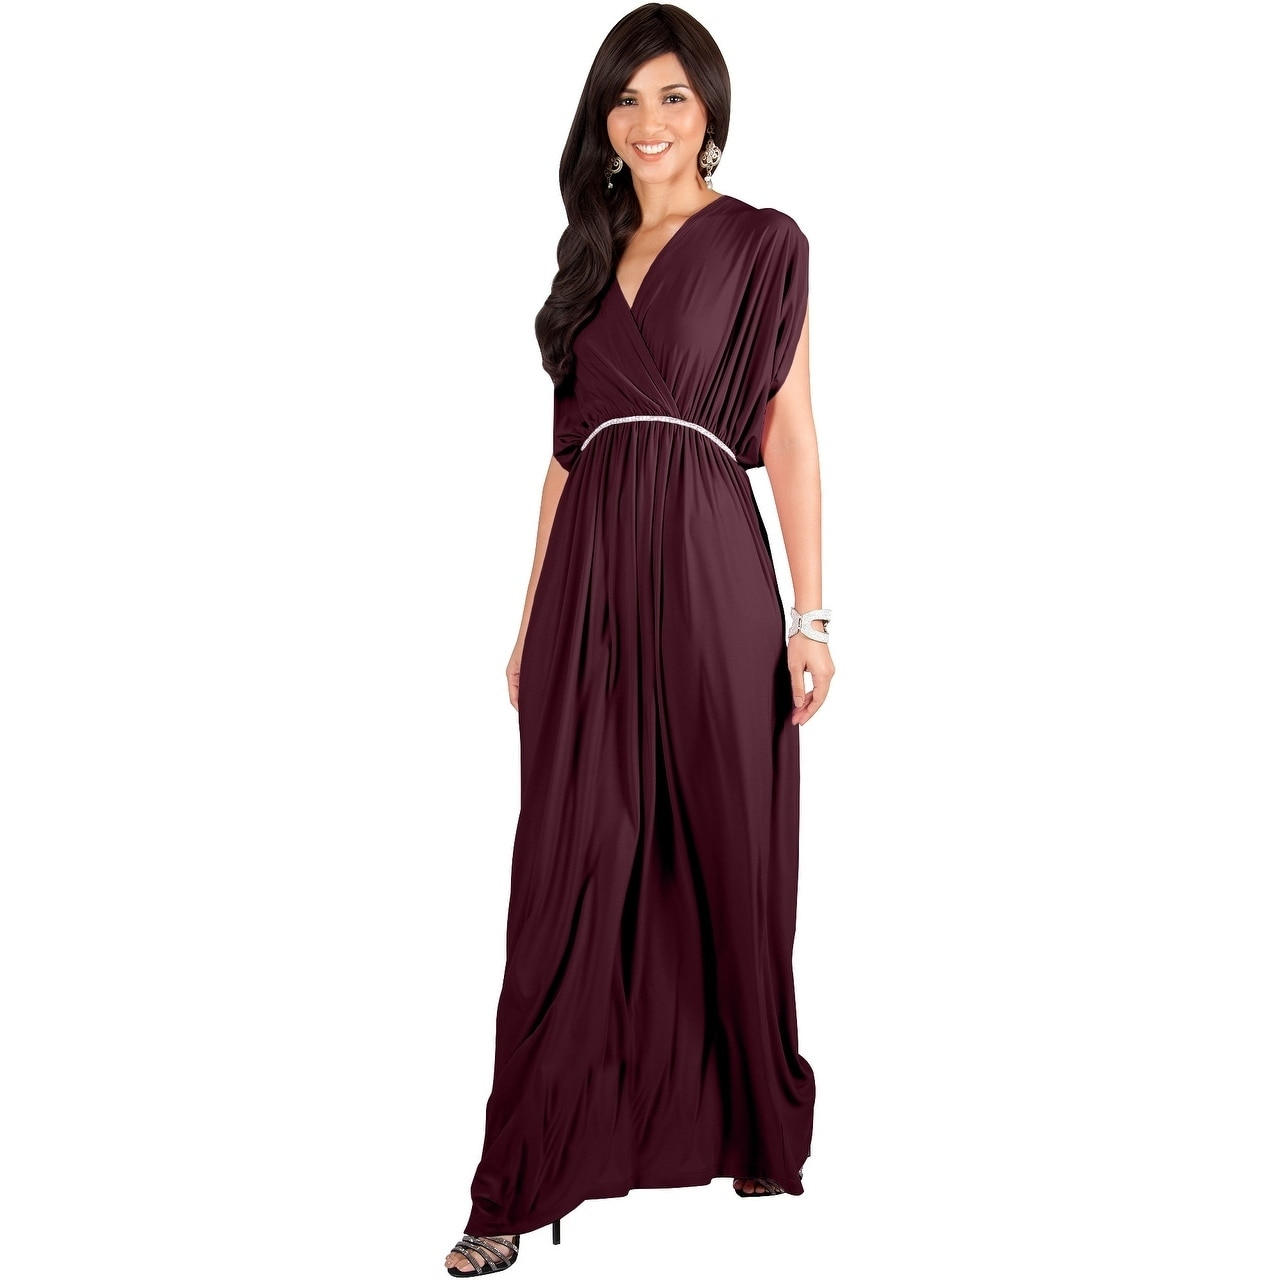 9853645adb Shop KOH KOH Womens Elegant Long V Neck Bridesmaid Flowy Maxi dresses -  Free Shipping On Orders Over  45 - Overstock - 20932581